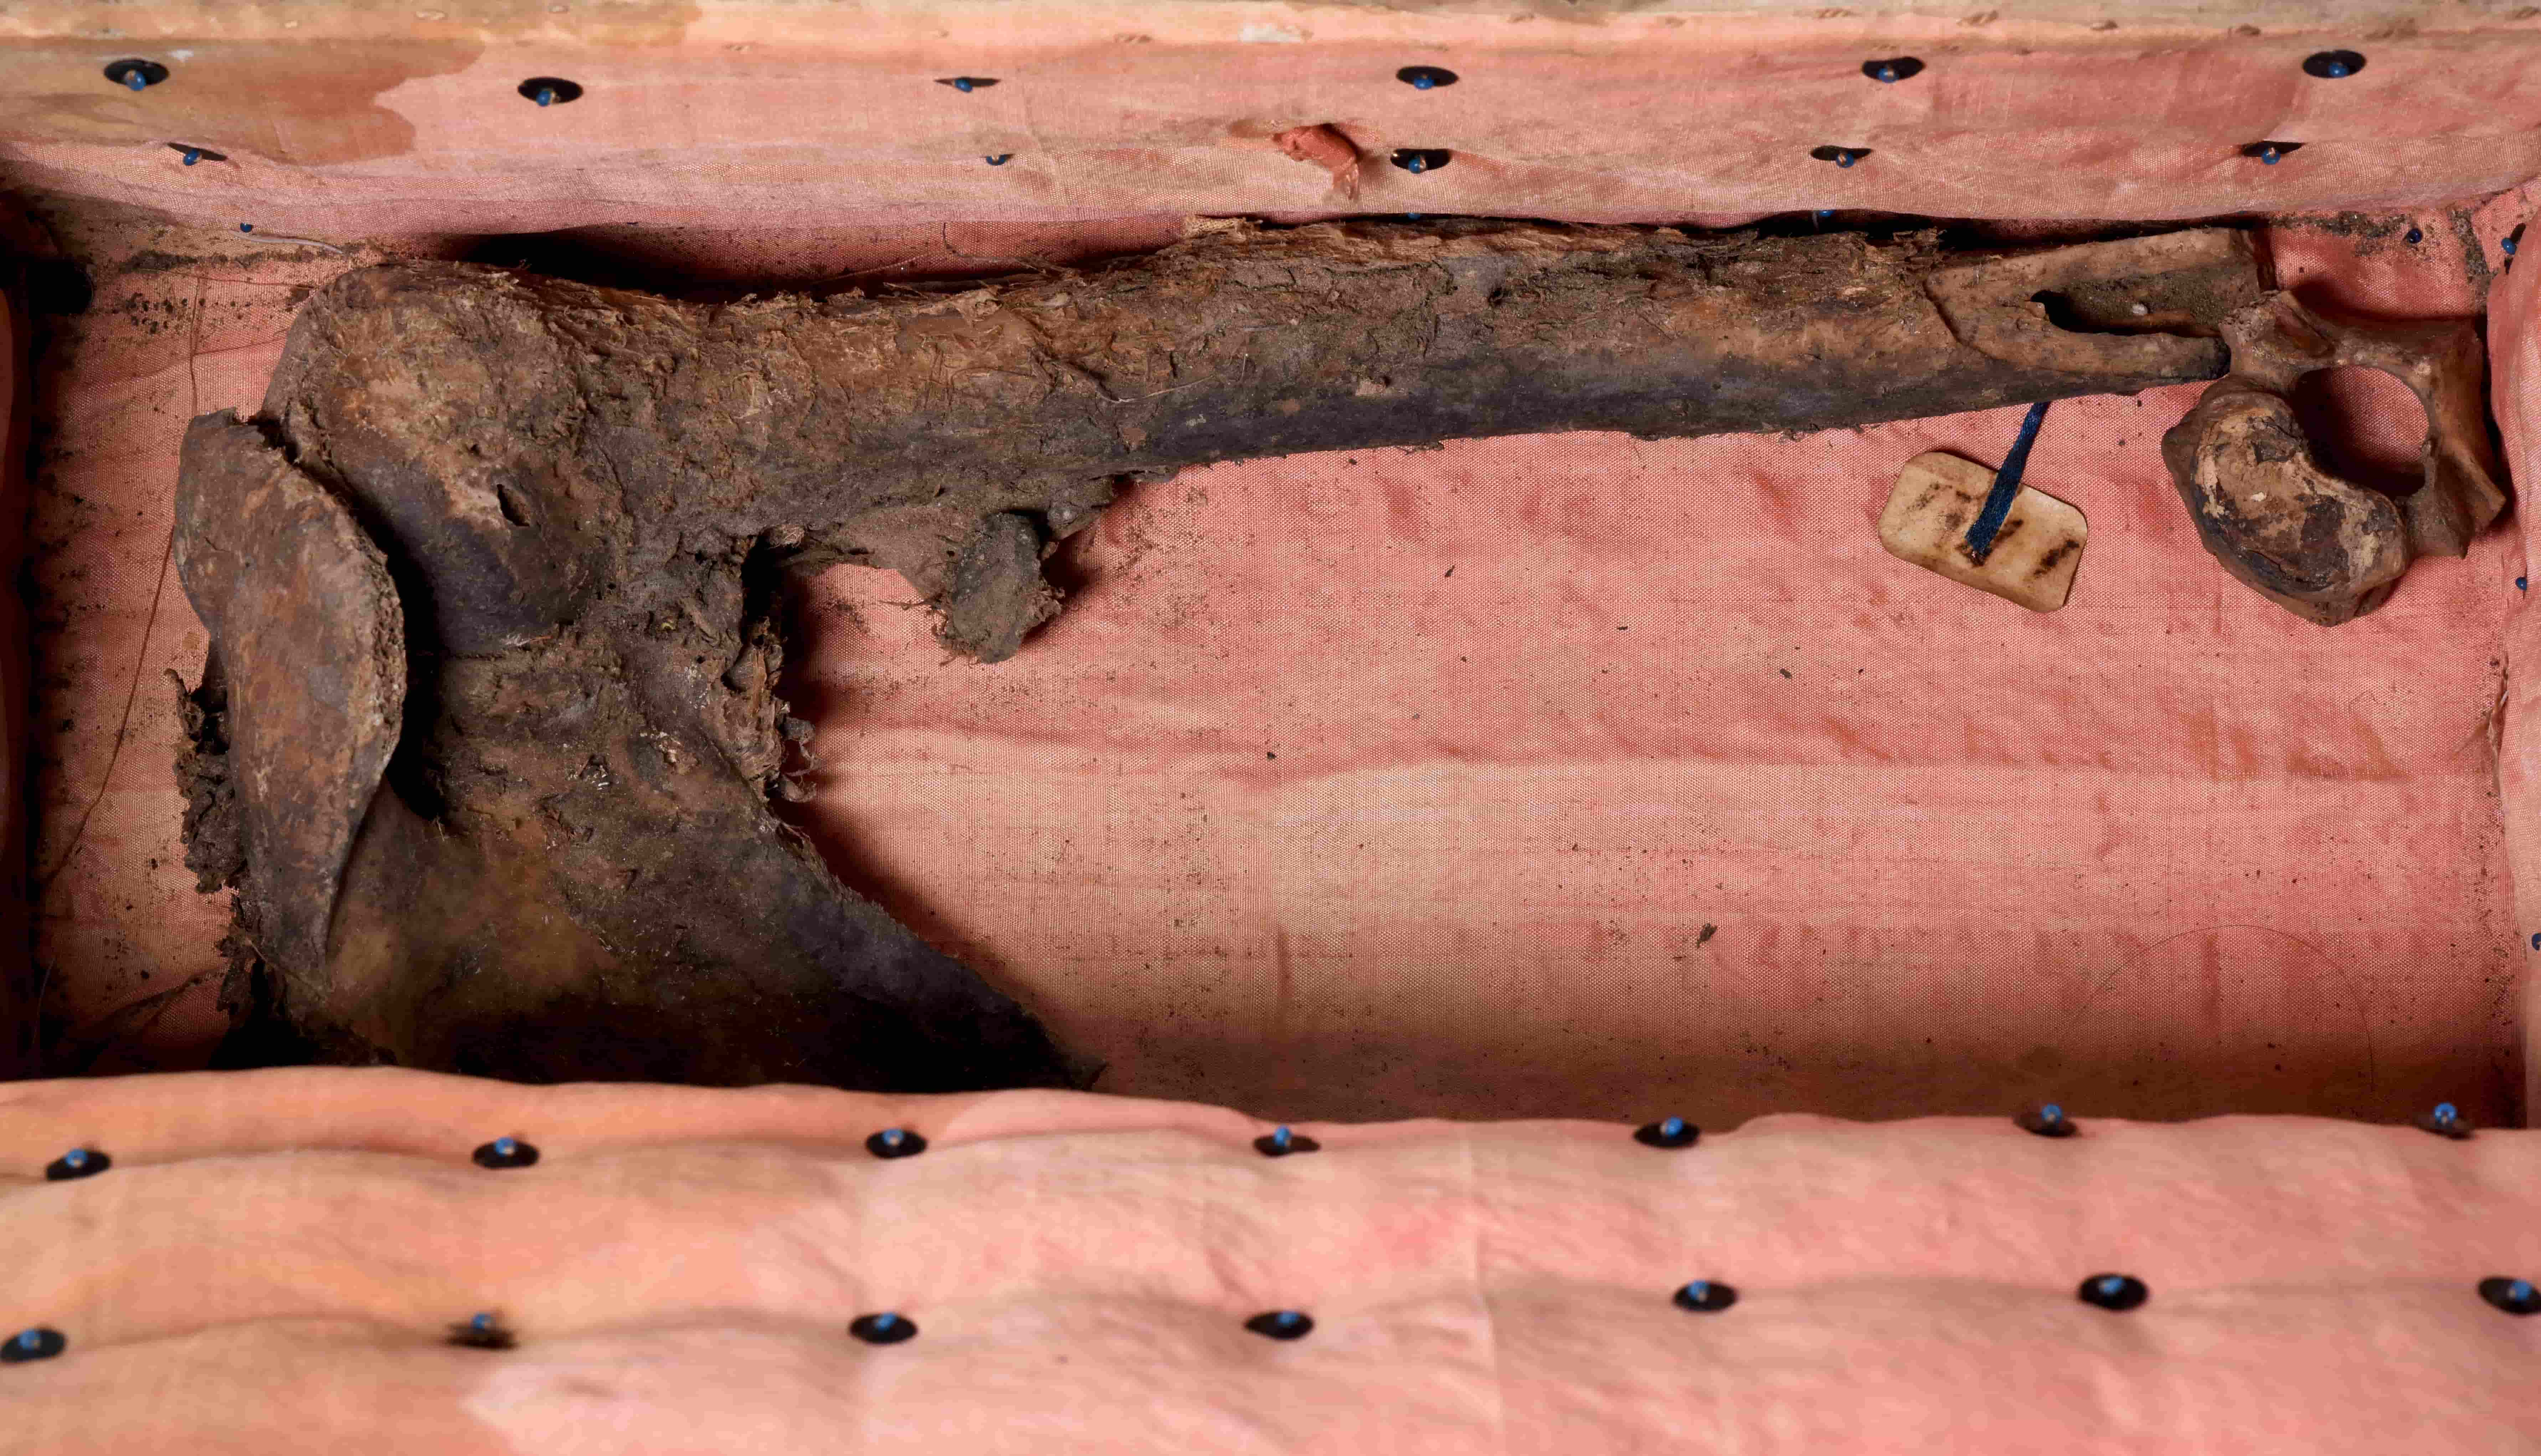 The interior of a chest lined with pink fabric. There is a human shoulder blade attached to an upper arm bone inside